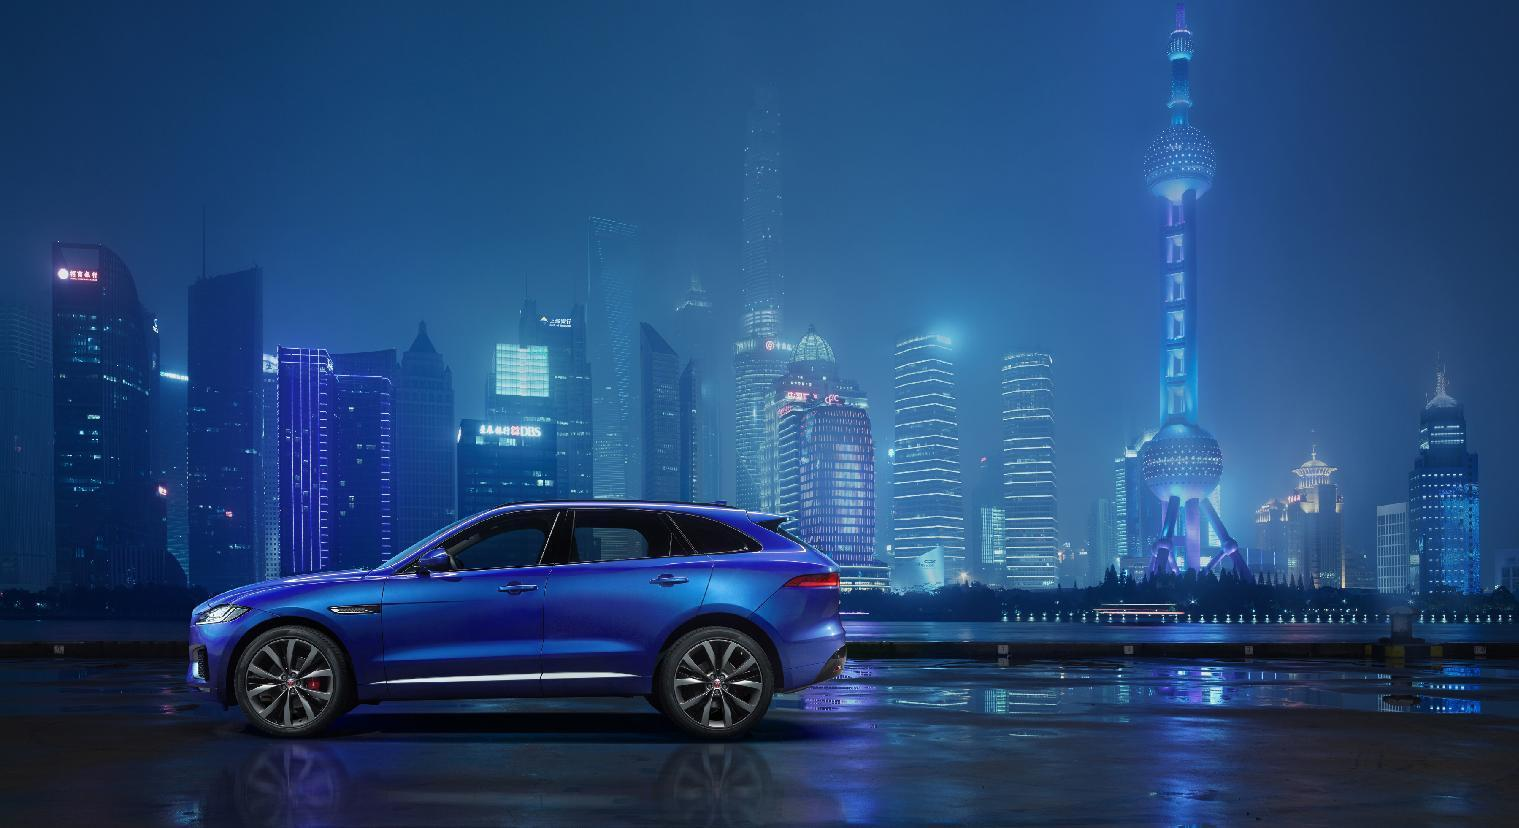 Will Jaguar set the Pace at this year's Frankfurt motor show?